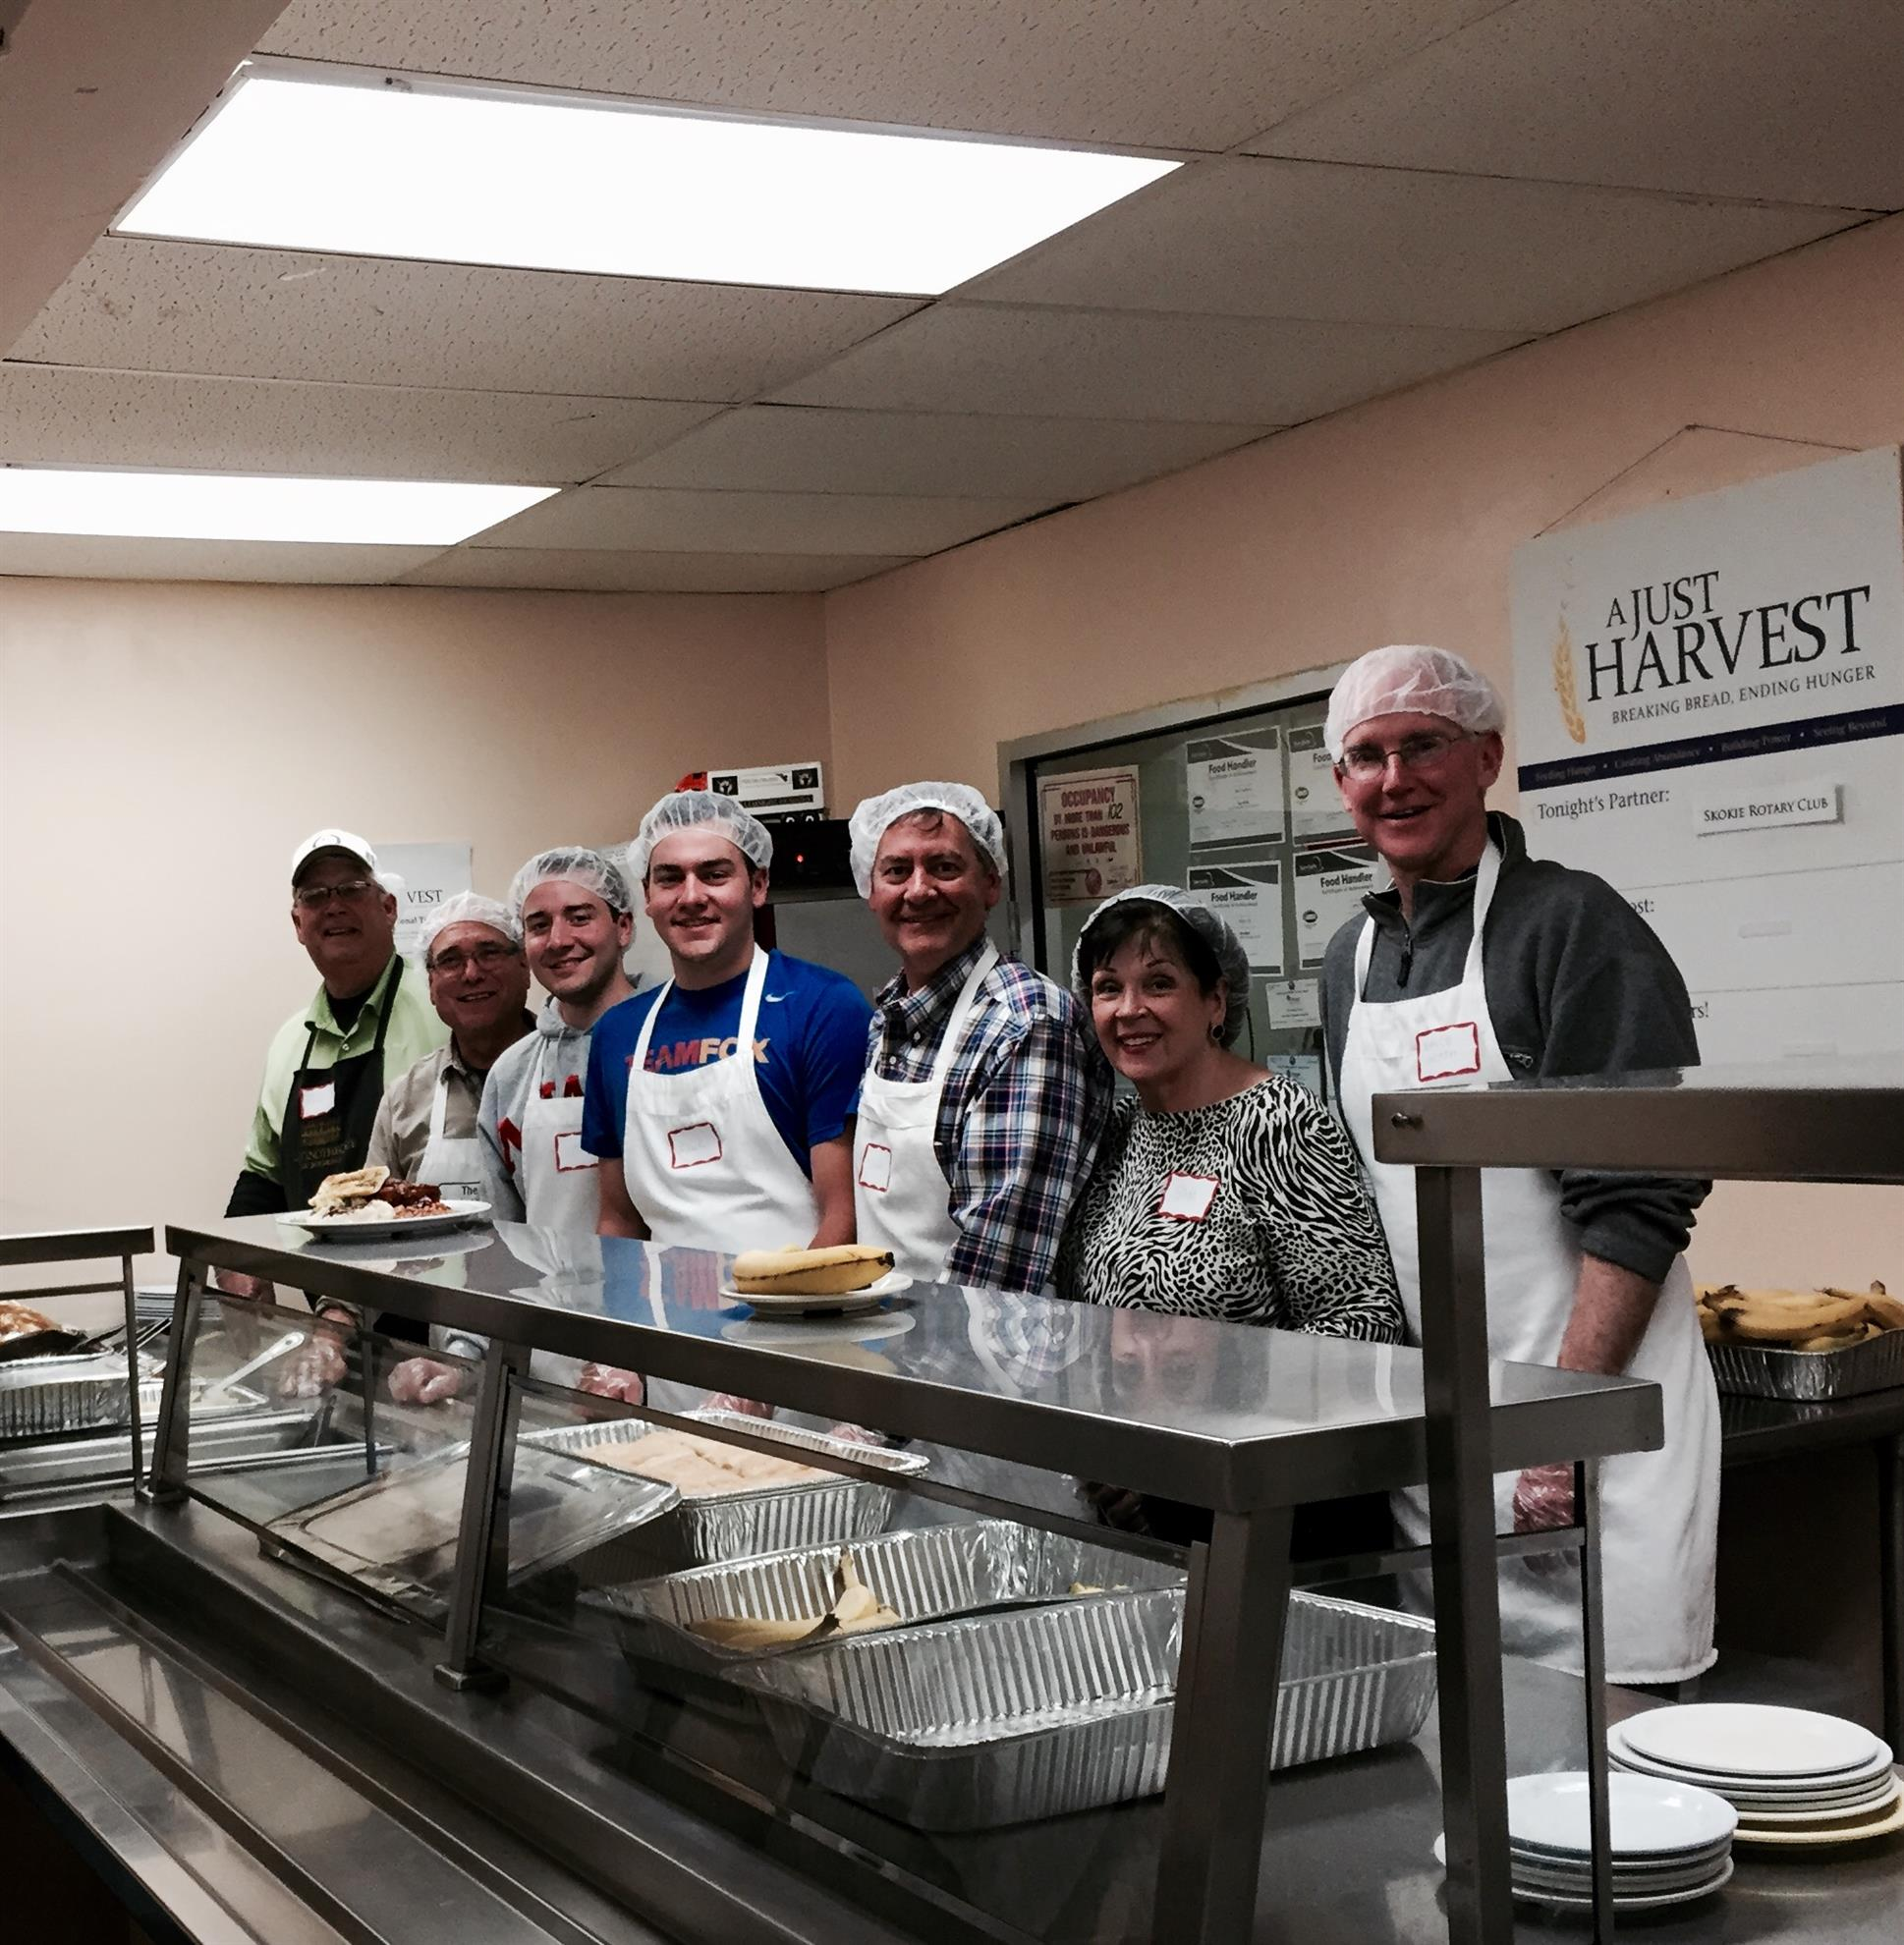 The Above Team Of Volunteers Helped Serve 109 Patrons This Past Sunday At A  Just Harvest Soup Kitchen Located At 7649 North Paulina Street Chicago.